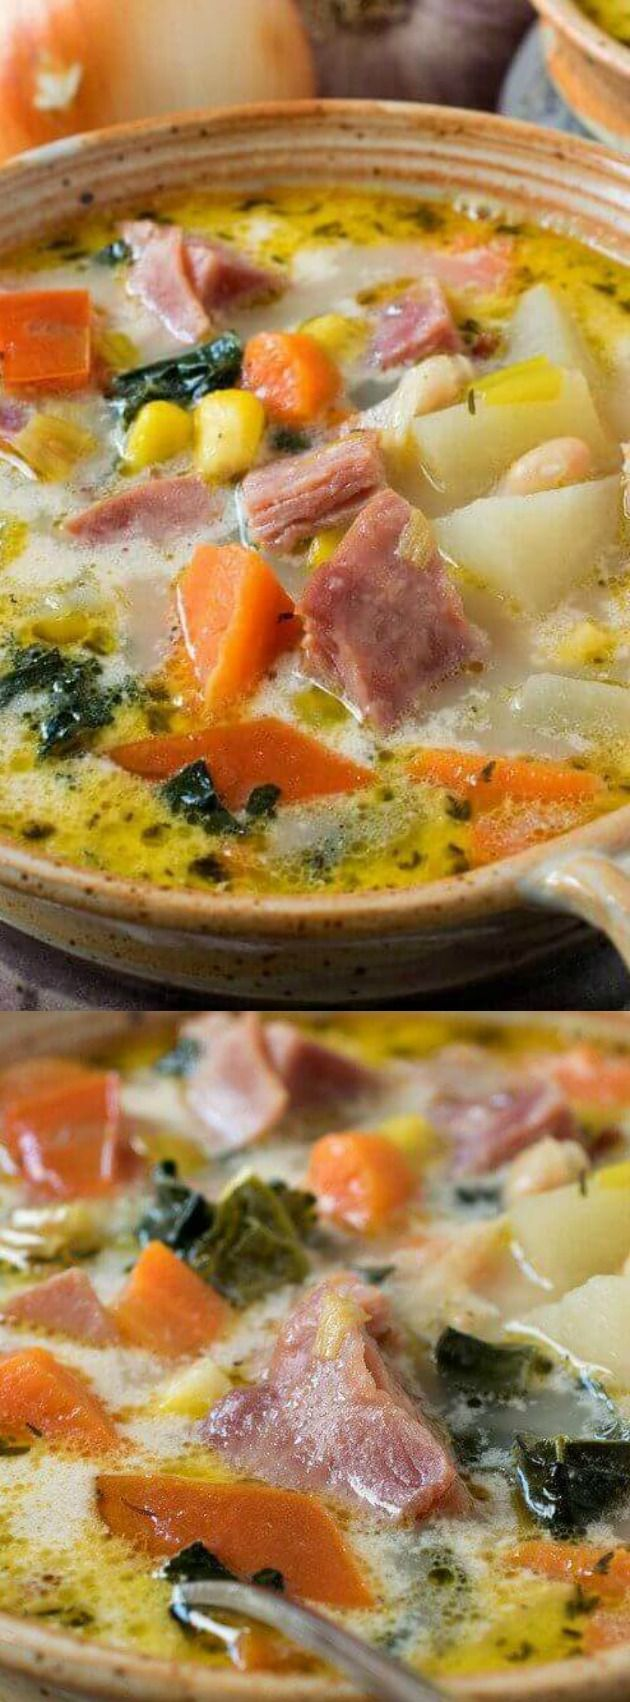 Ever find yourself with a leftover ham bone from a special Sunday dinner or even a holiday meal? No worries, this Ham and Vegetable Soup from A Family Feast has the perfect recipe for how to use that ham bone so that it doesn't go to waist.